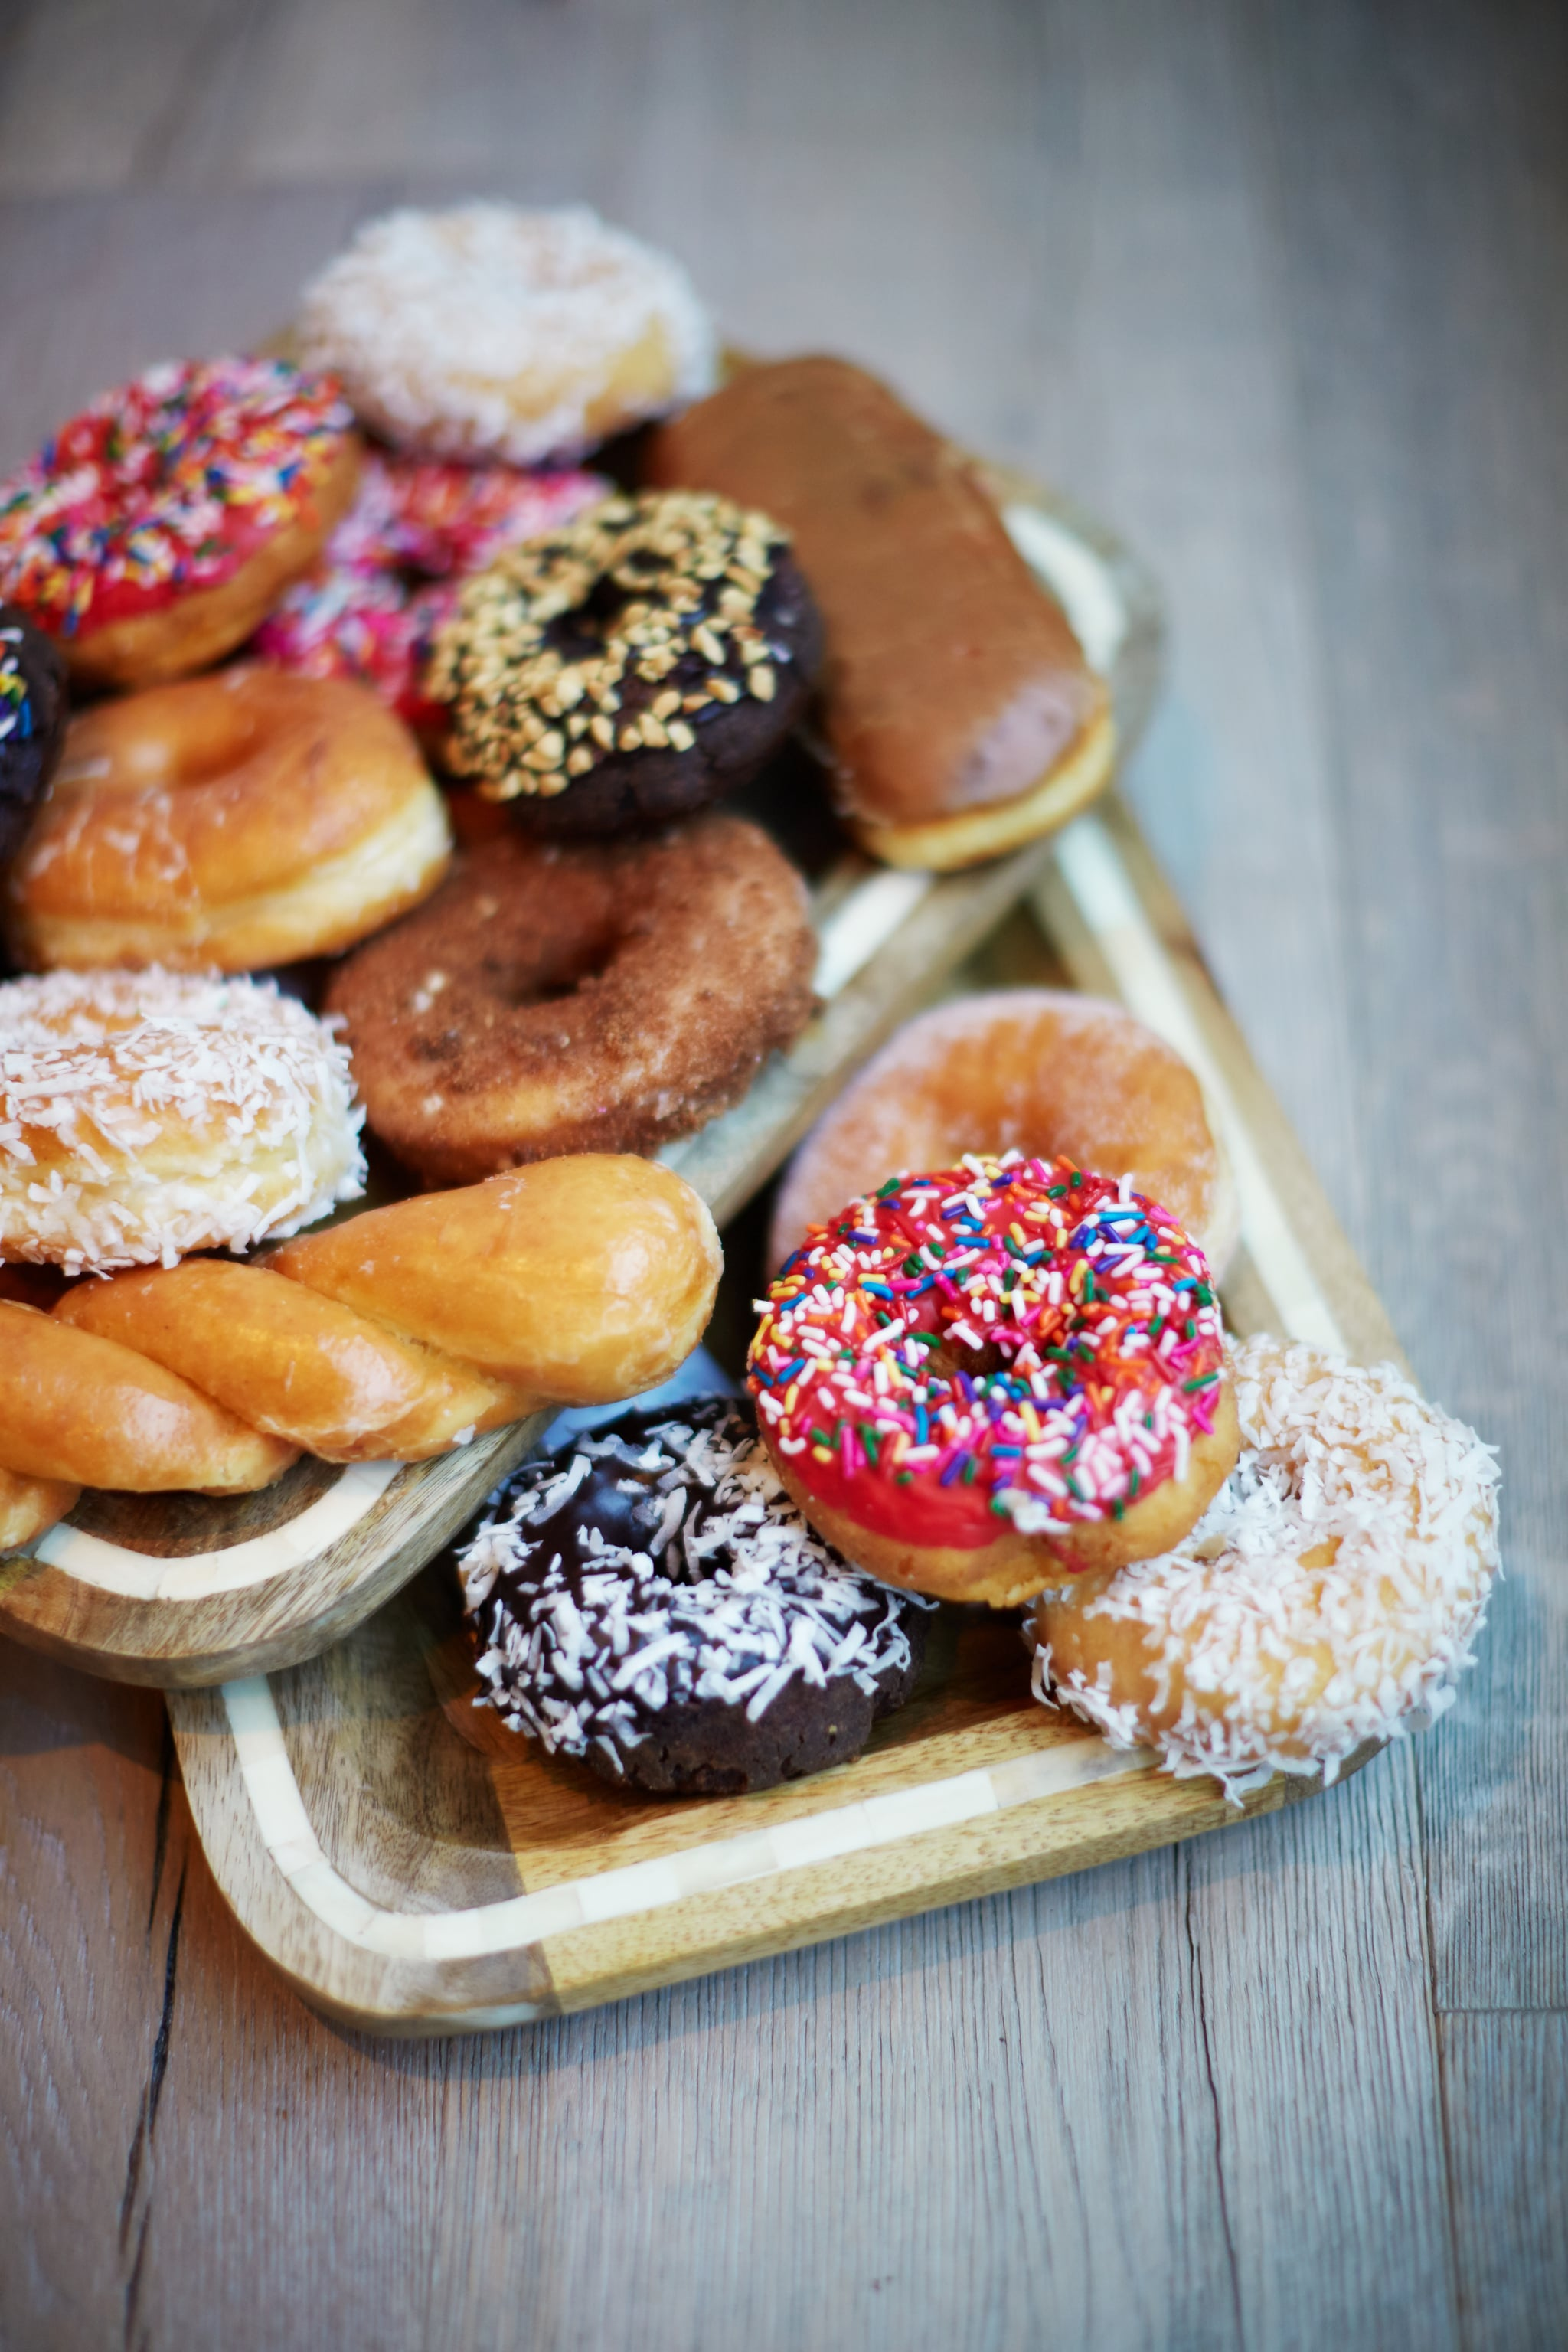 If You're Trying to Cut Sugar Out of Your Diet, Here Are 5 Much-Needed Tips